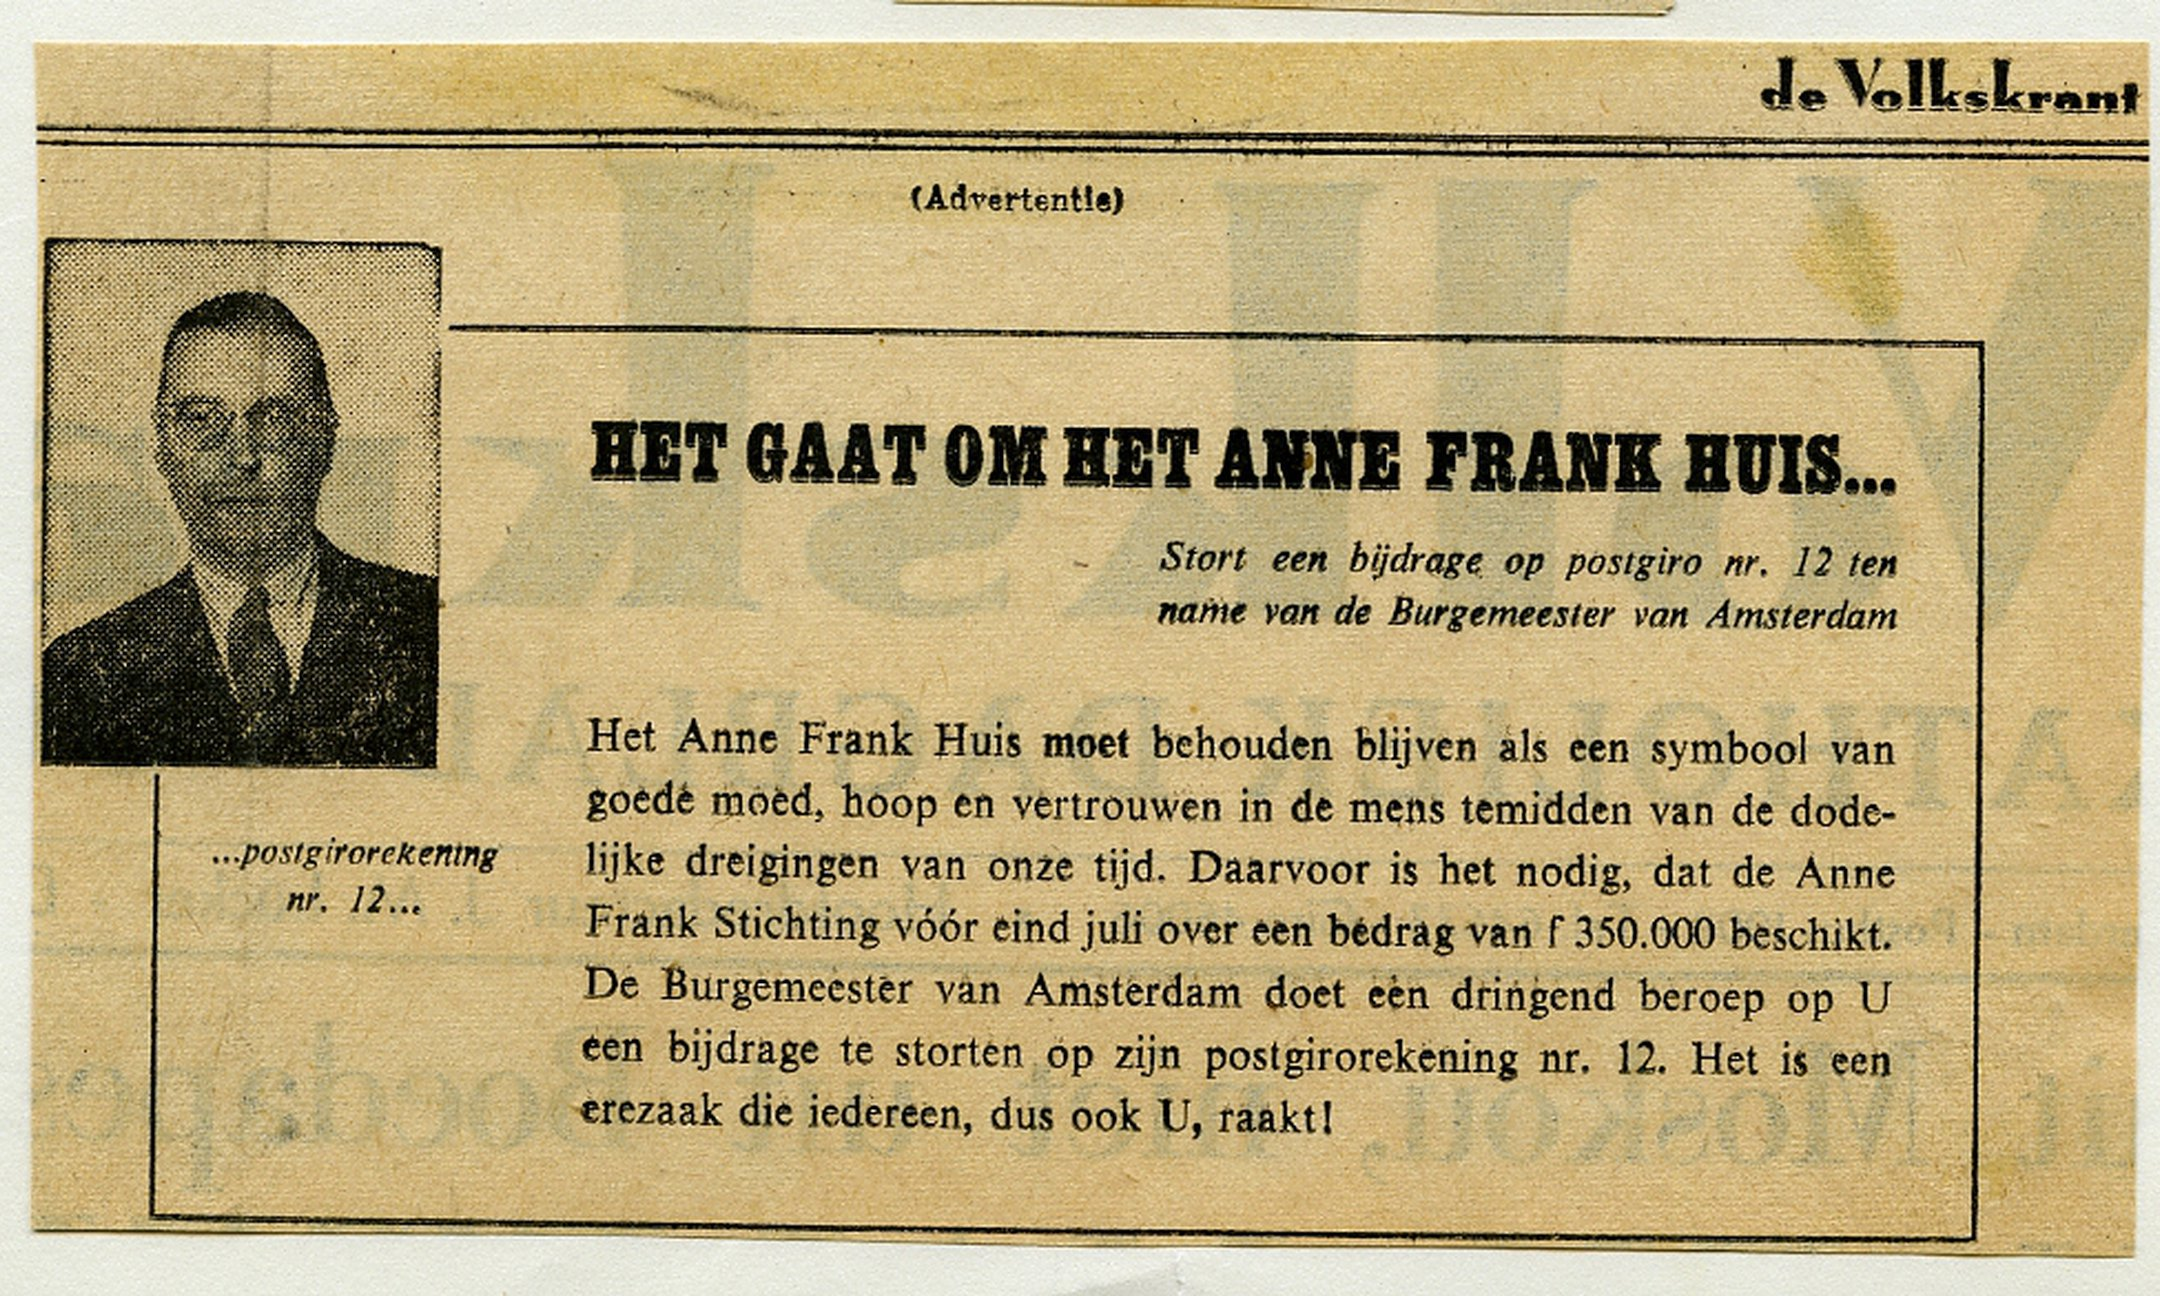 Mayor Van Hall's appeal to the public to contribute to the preservation of the Anne Frank House